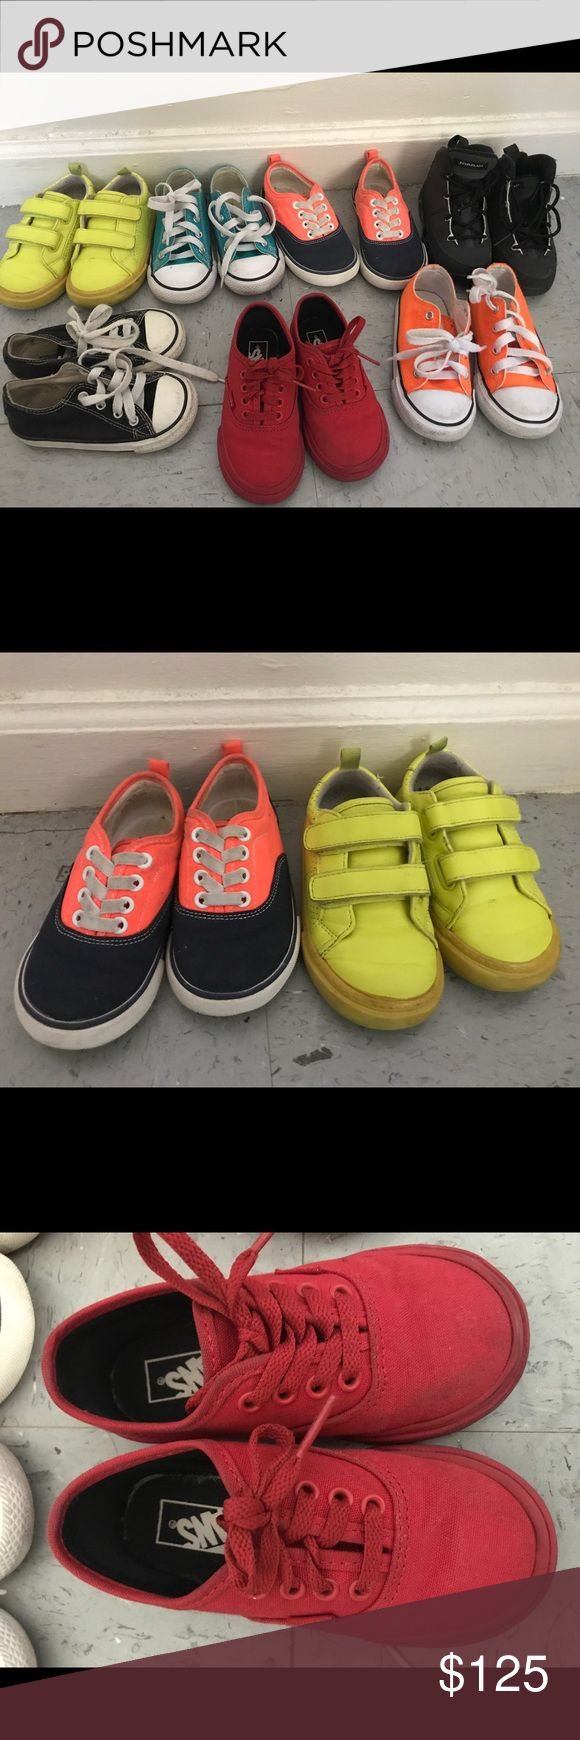 Variety of toddler sneakers!! Selling all of these for $125 you get all 7 pairs. 3 converse  the black is a size 6 and the other 2 are size 7, will sell all 3 for $55.....2pairs of gap sneakers size 7 as well, will to sell both for $25....one pair of vans also size 7, willing to sell for $15 and the pair of Jordan's for $35. They just need a little cleaning and also willing to negotiate a price for all 7 pairs. Lastly with all 7pairs I can do free shipping! So let me know and I'll change the…